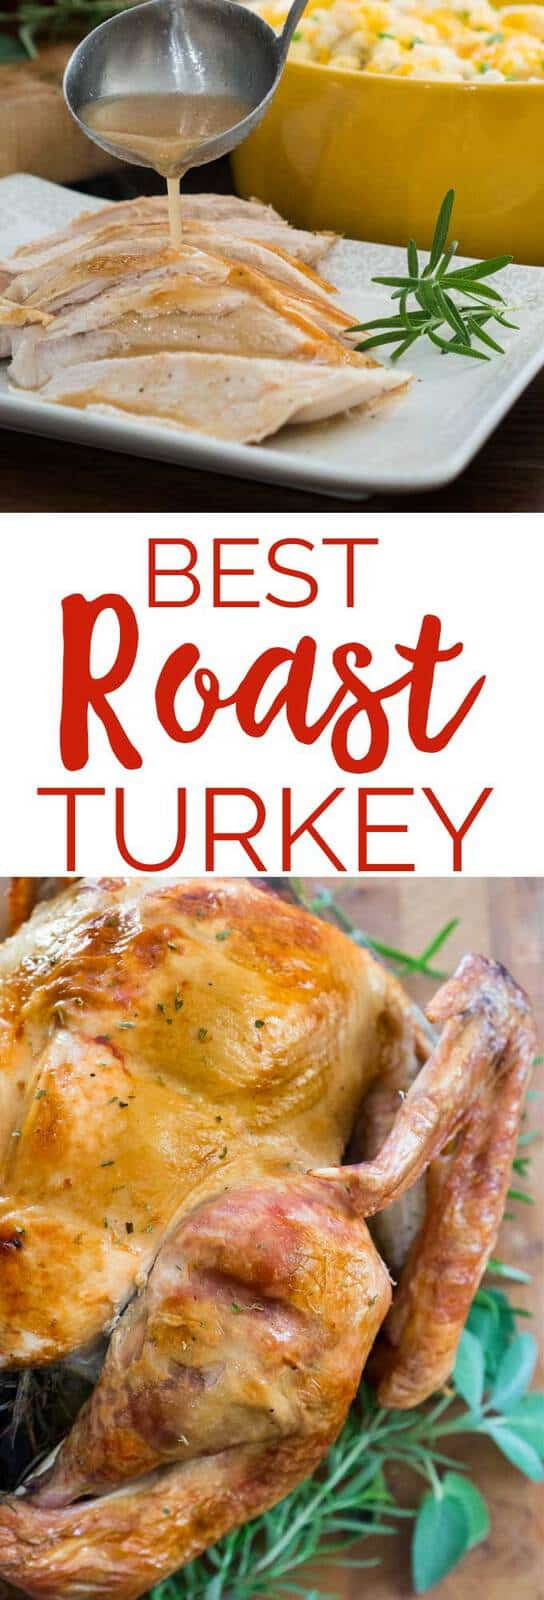 Best Roast Turkey Recipe For Thanksgiving  Best Roast Turkey Recipe No Fail Turkey for Thanksgiving